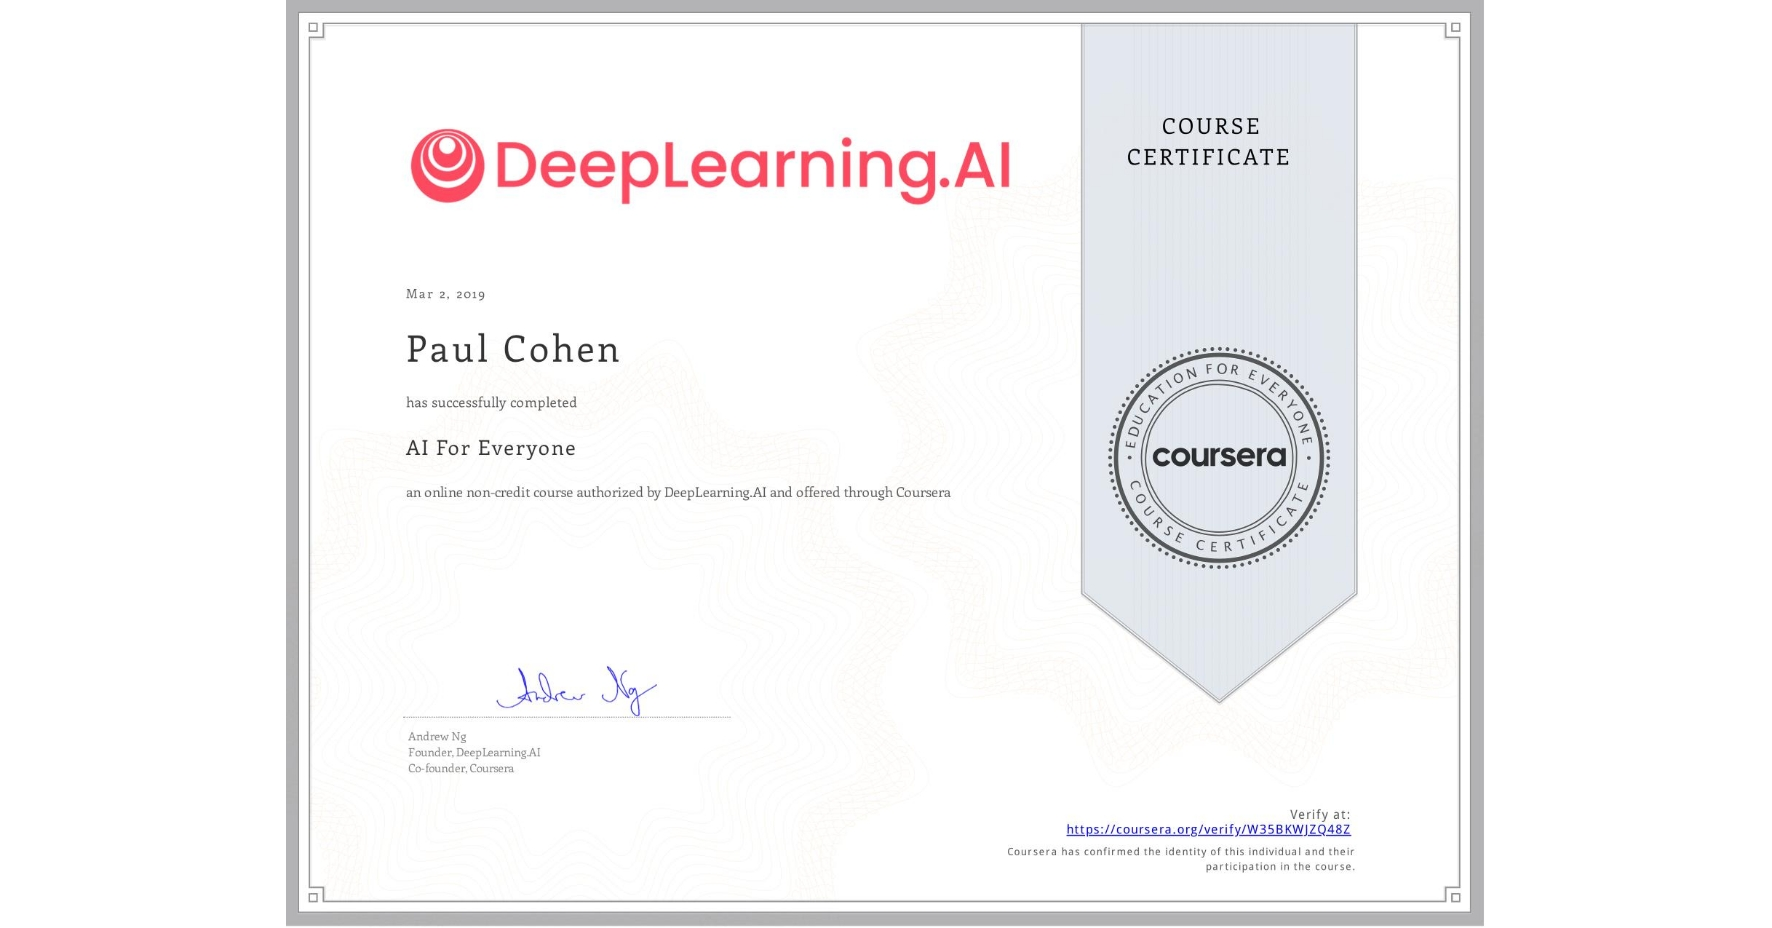 View certificate for Paul Cohen, AI For Everyone, an online non-credit course authorized by DeepLearning.AI and offered through Coursera